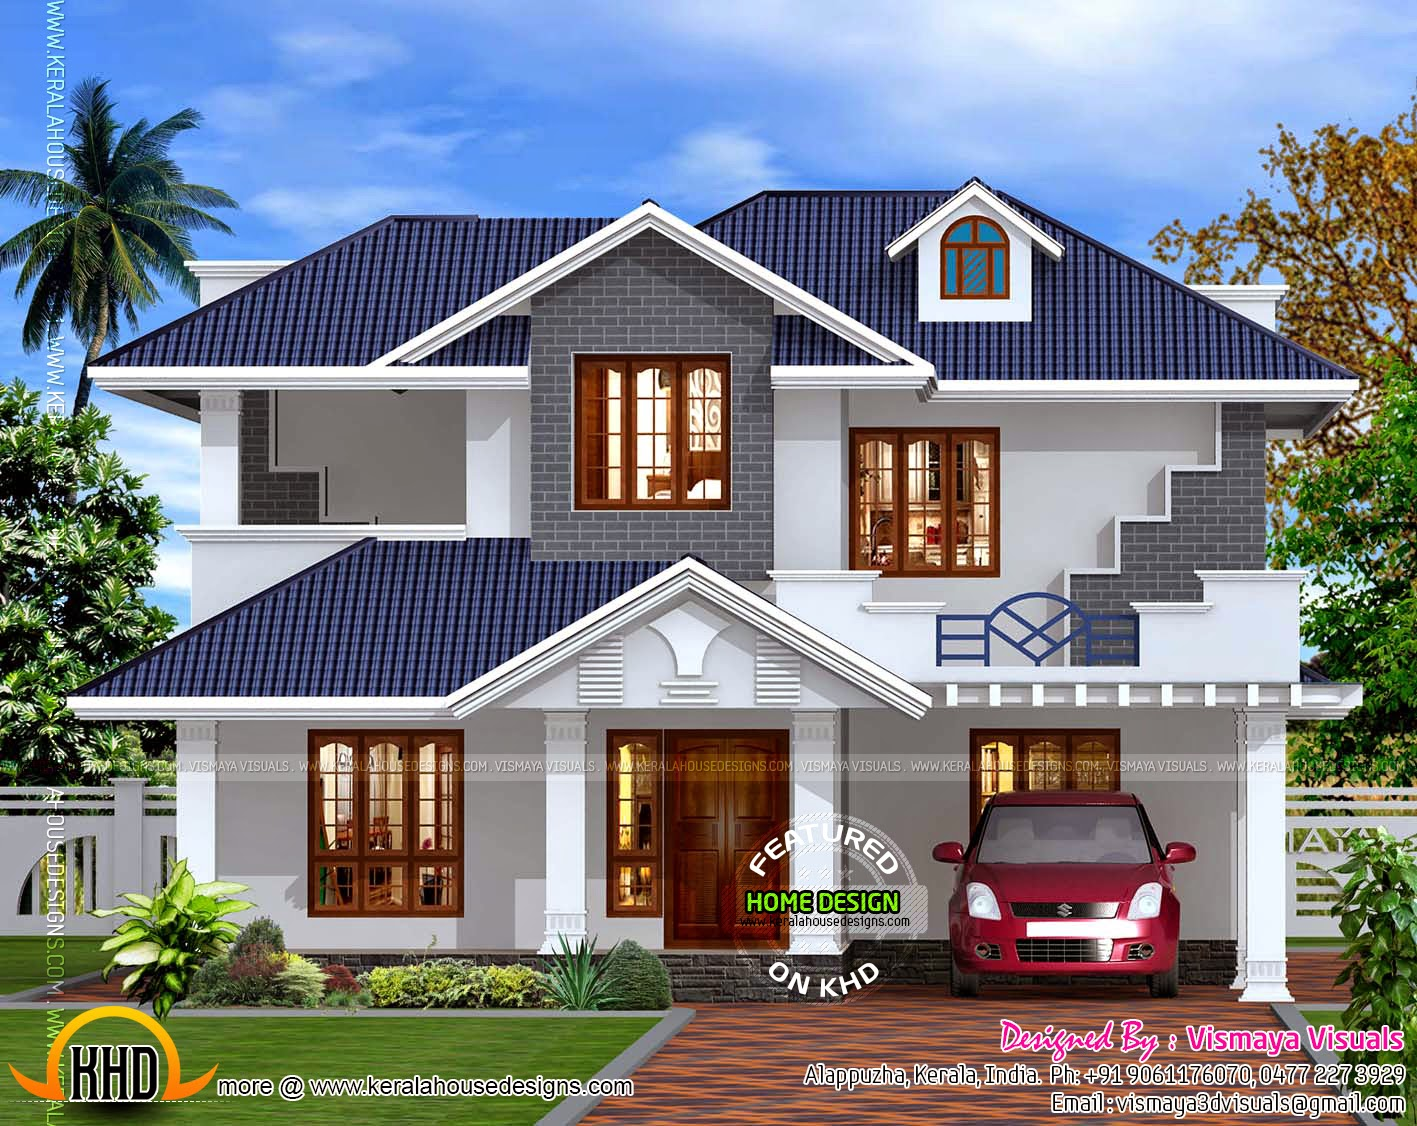 Kerala style villa exterior kerala home design and floor for Kerala style house plans with photos